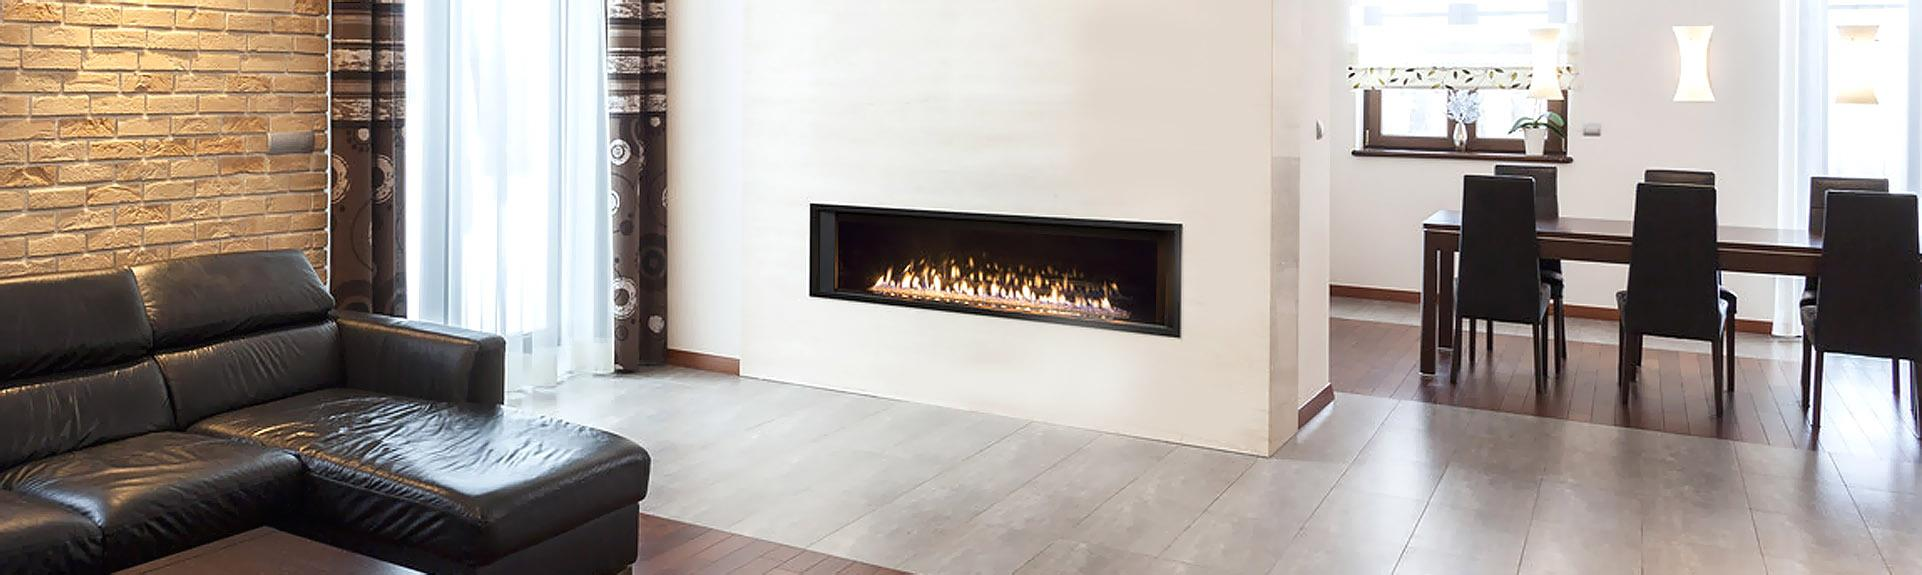 Custom Glass Fireplace Doors Custom Glass Fireplace Doors Uk Fireplace Ideas